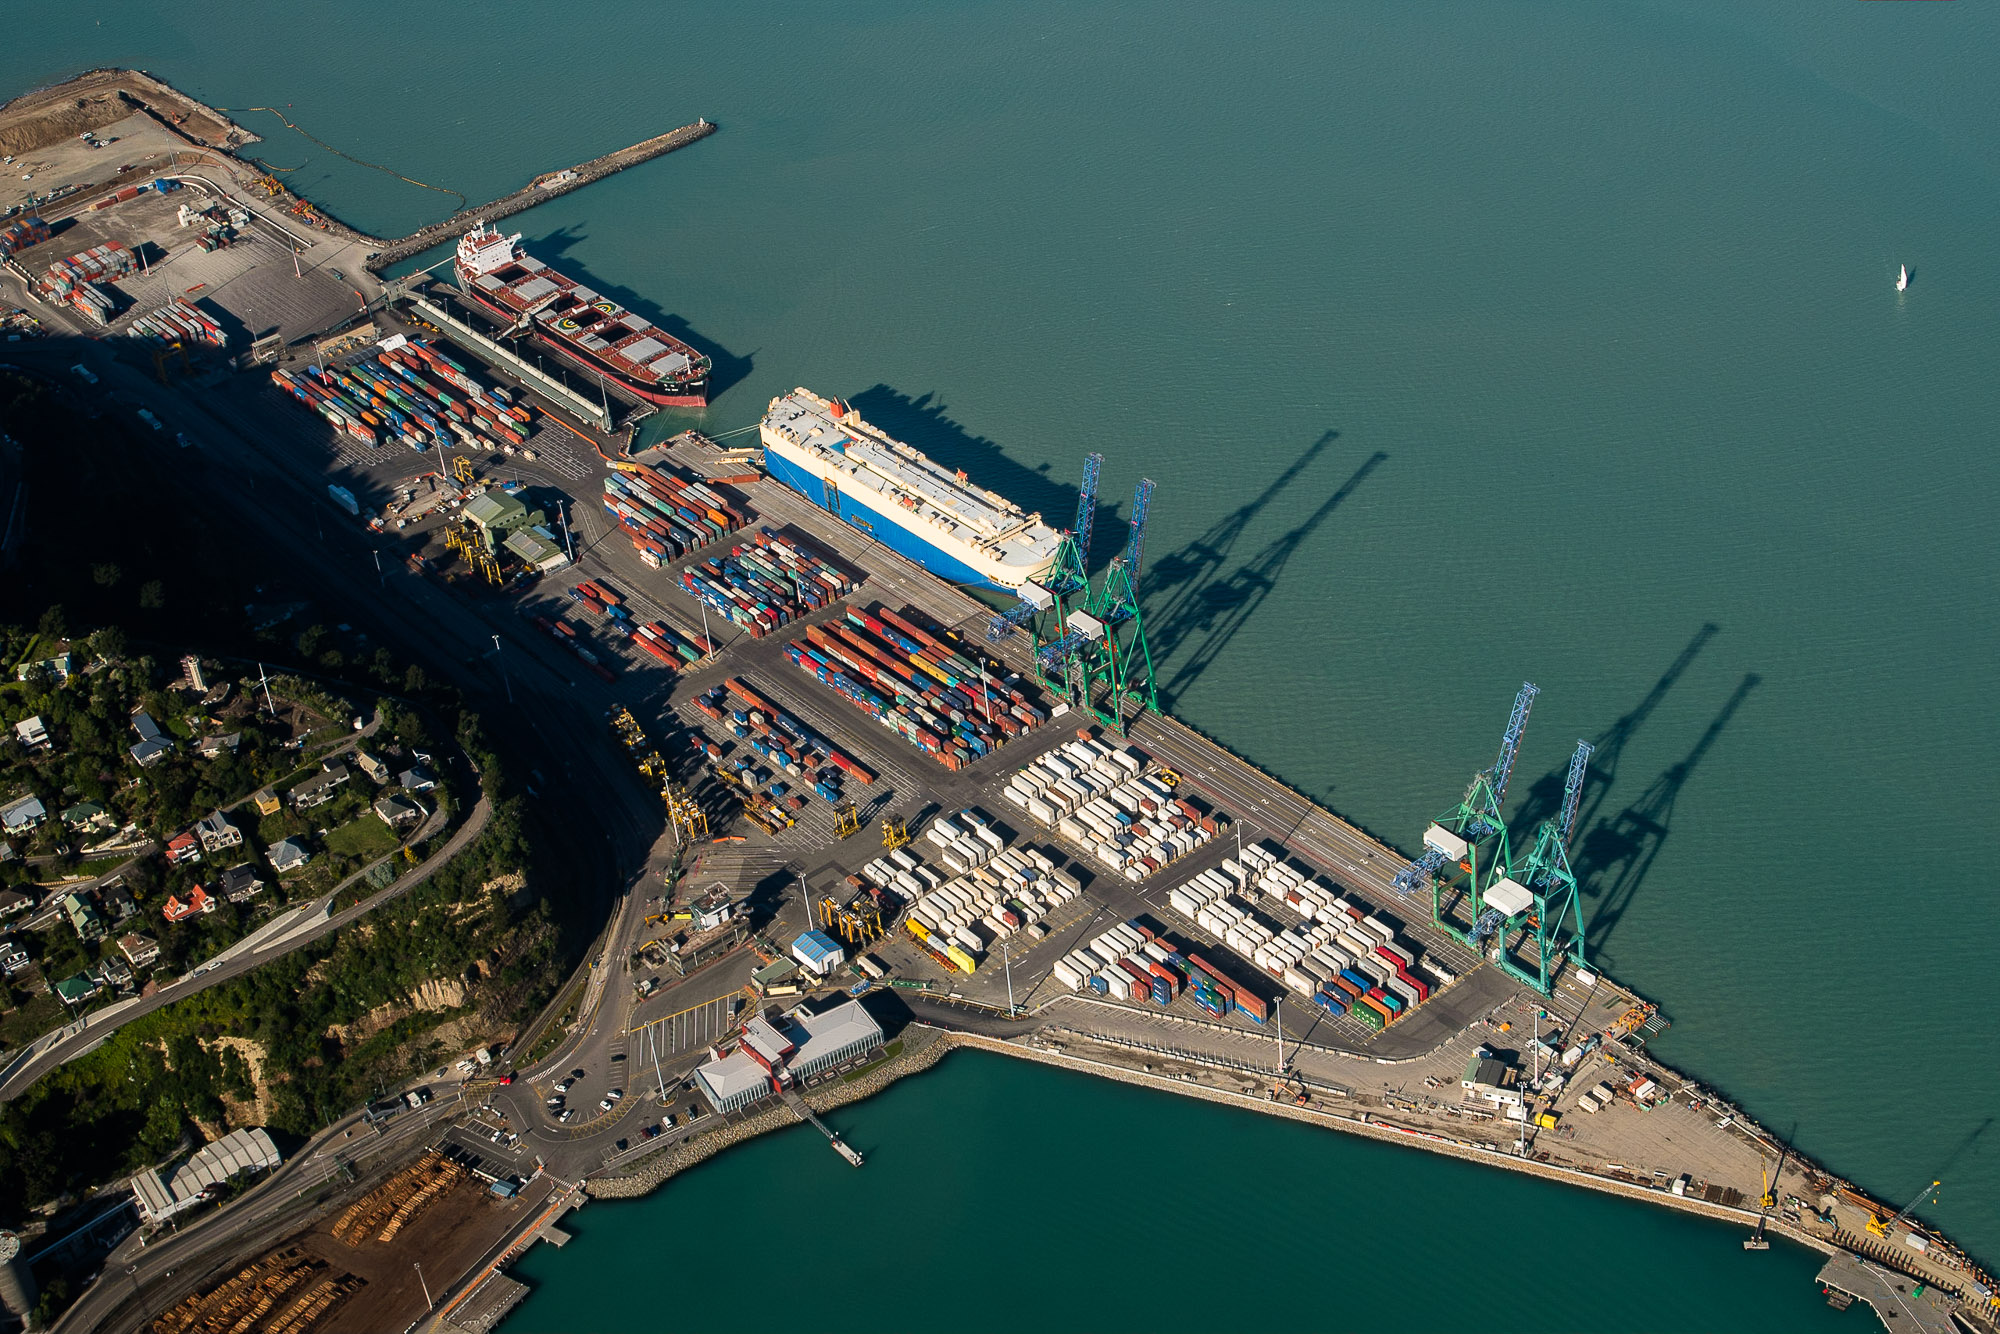 Lyttelton Port of Christchurch aerial, New Zealand. © www.thomaspickard.com No use without written permission from photographer.